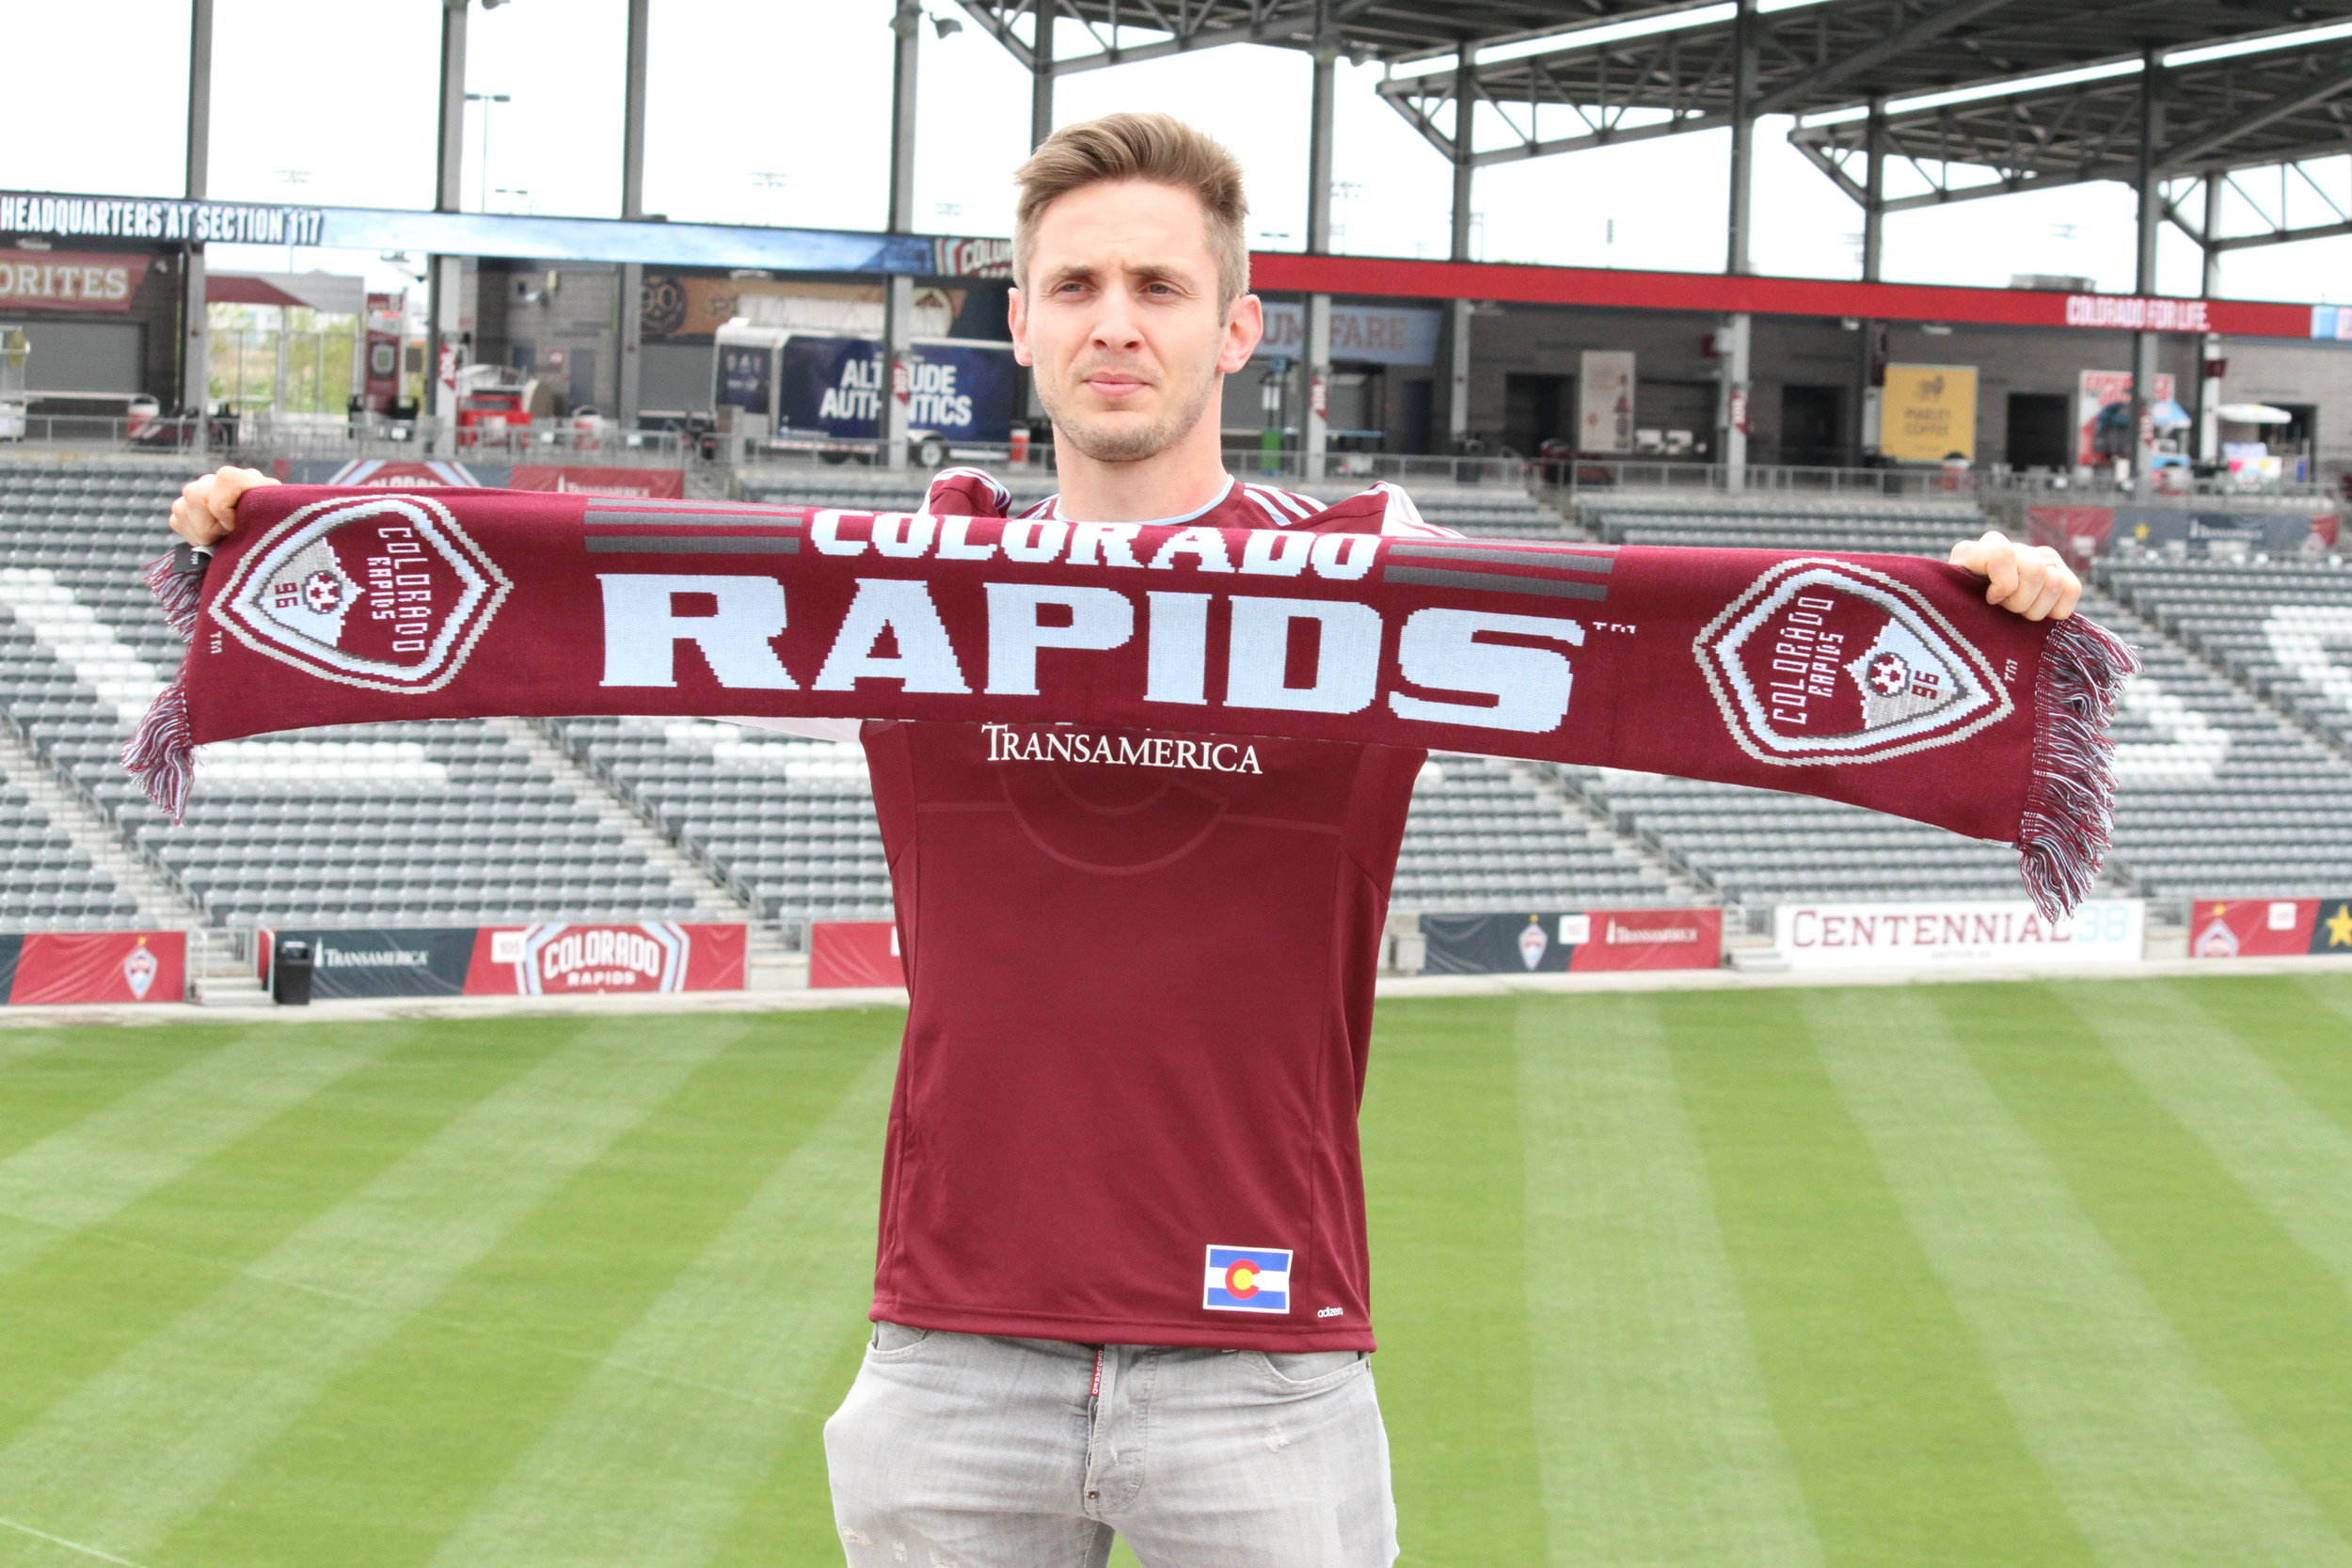 Doyle's introduction at the Colorado Rapids